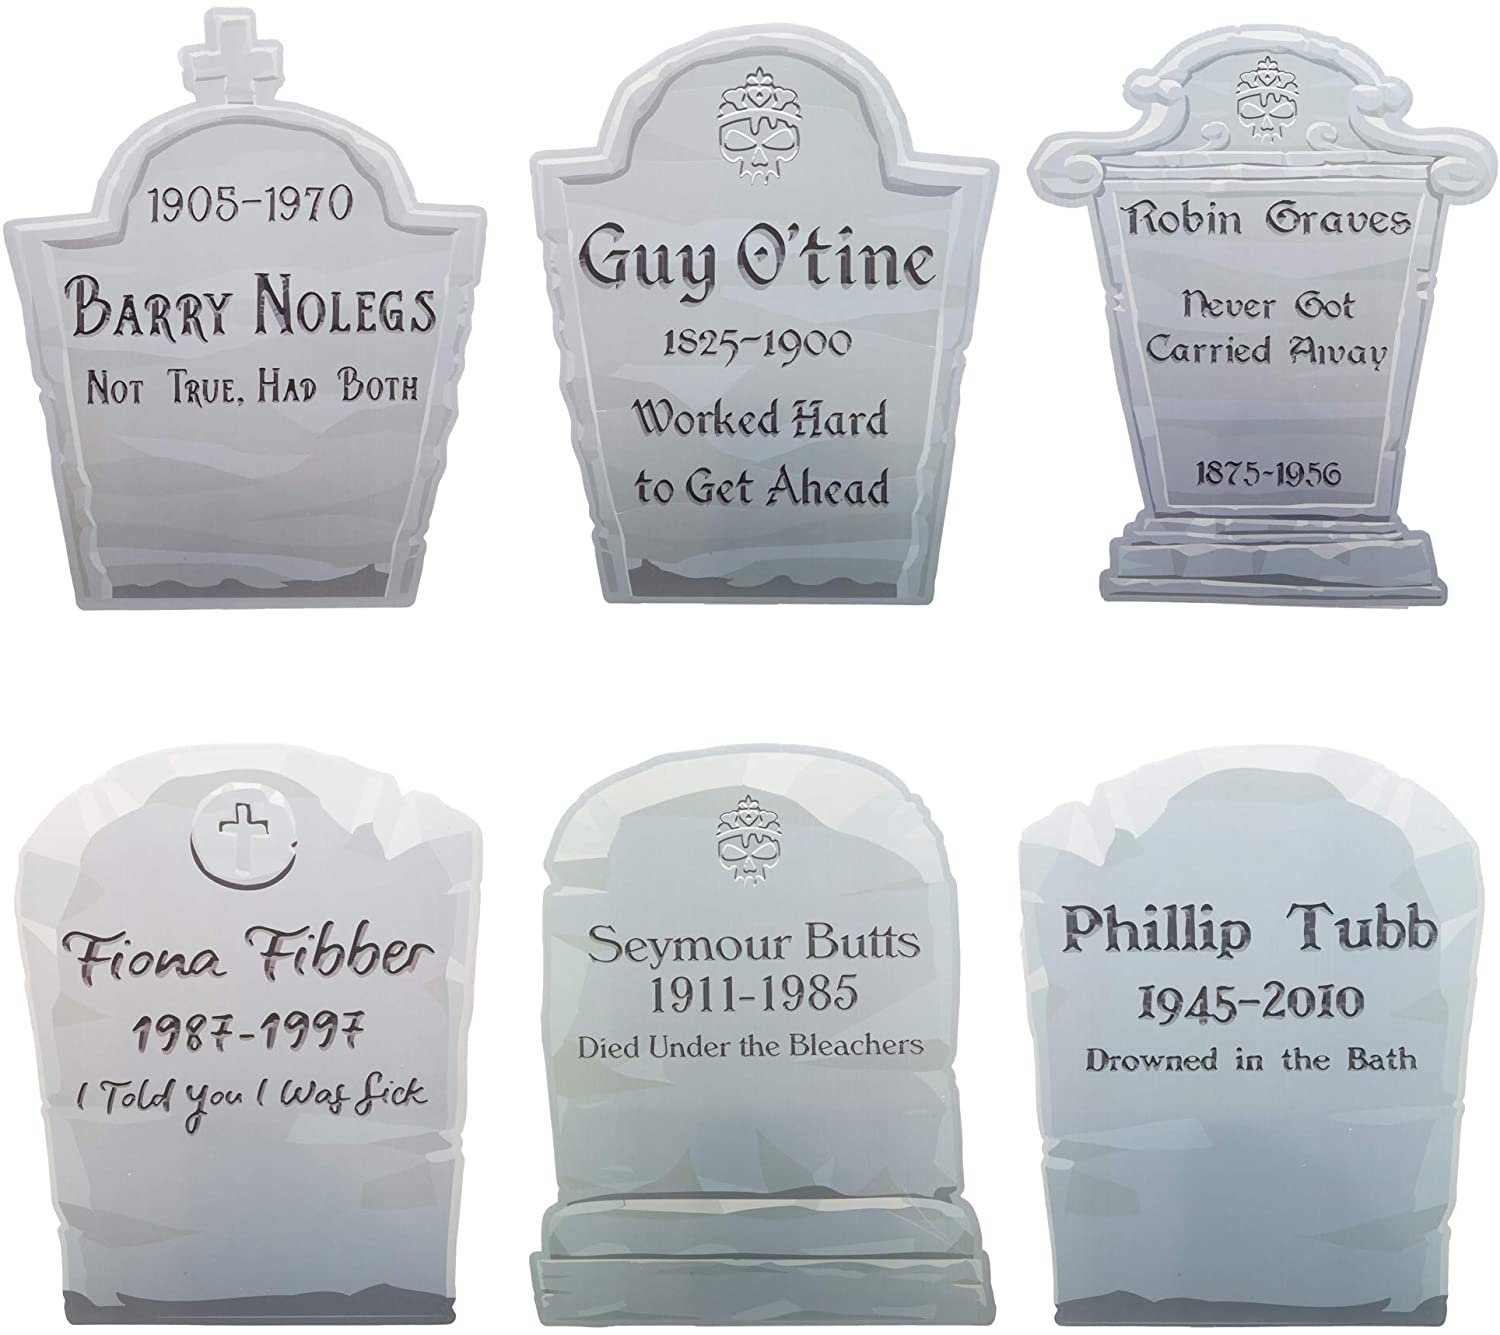 Tombstone Walkway Yard Signs Halloween Decorations - 6 Funny Gravestones with Stakes - Outdoor Holiday Decor, Haunted House Set Up, Graveyard Theme Set, Theater Play Props for Lawn, Garden & Backyard